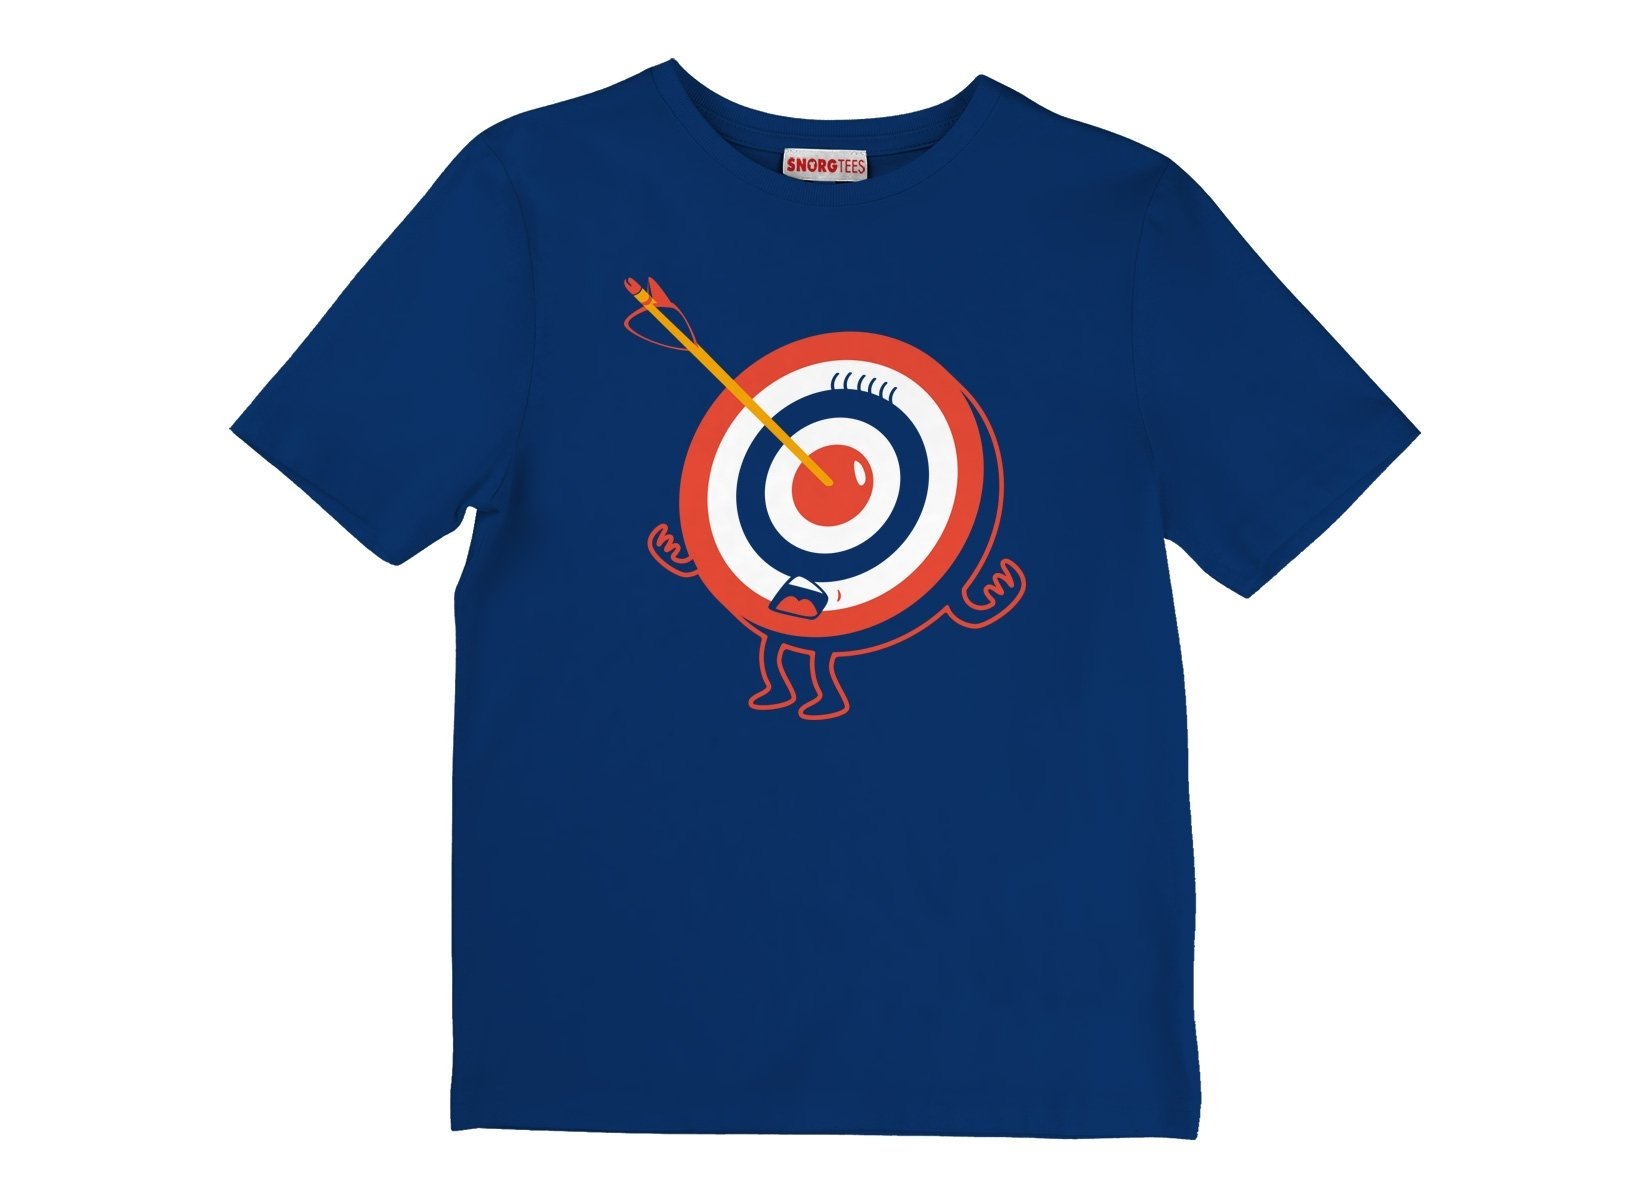 Bullseye on Kids T-Shirt